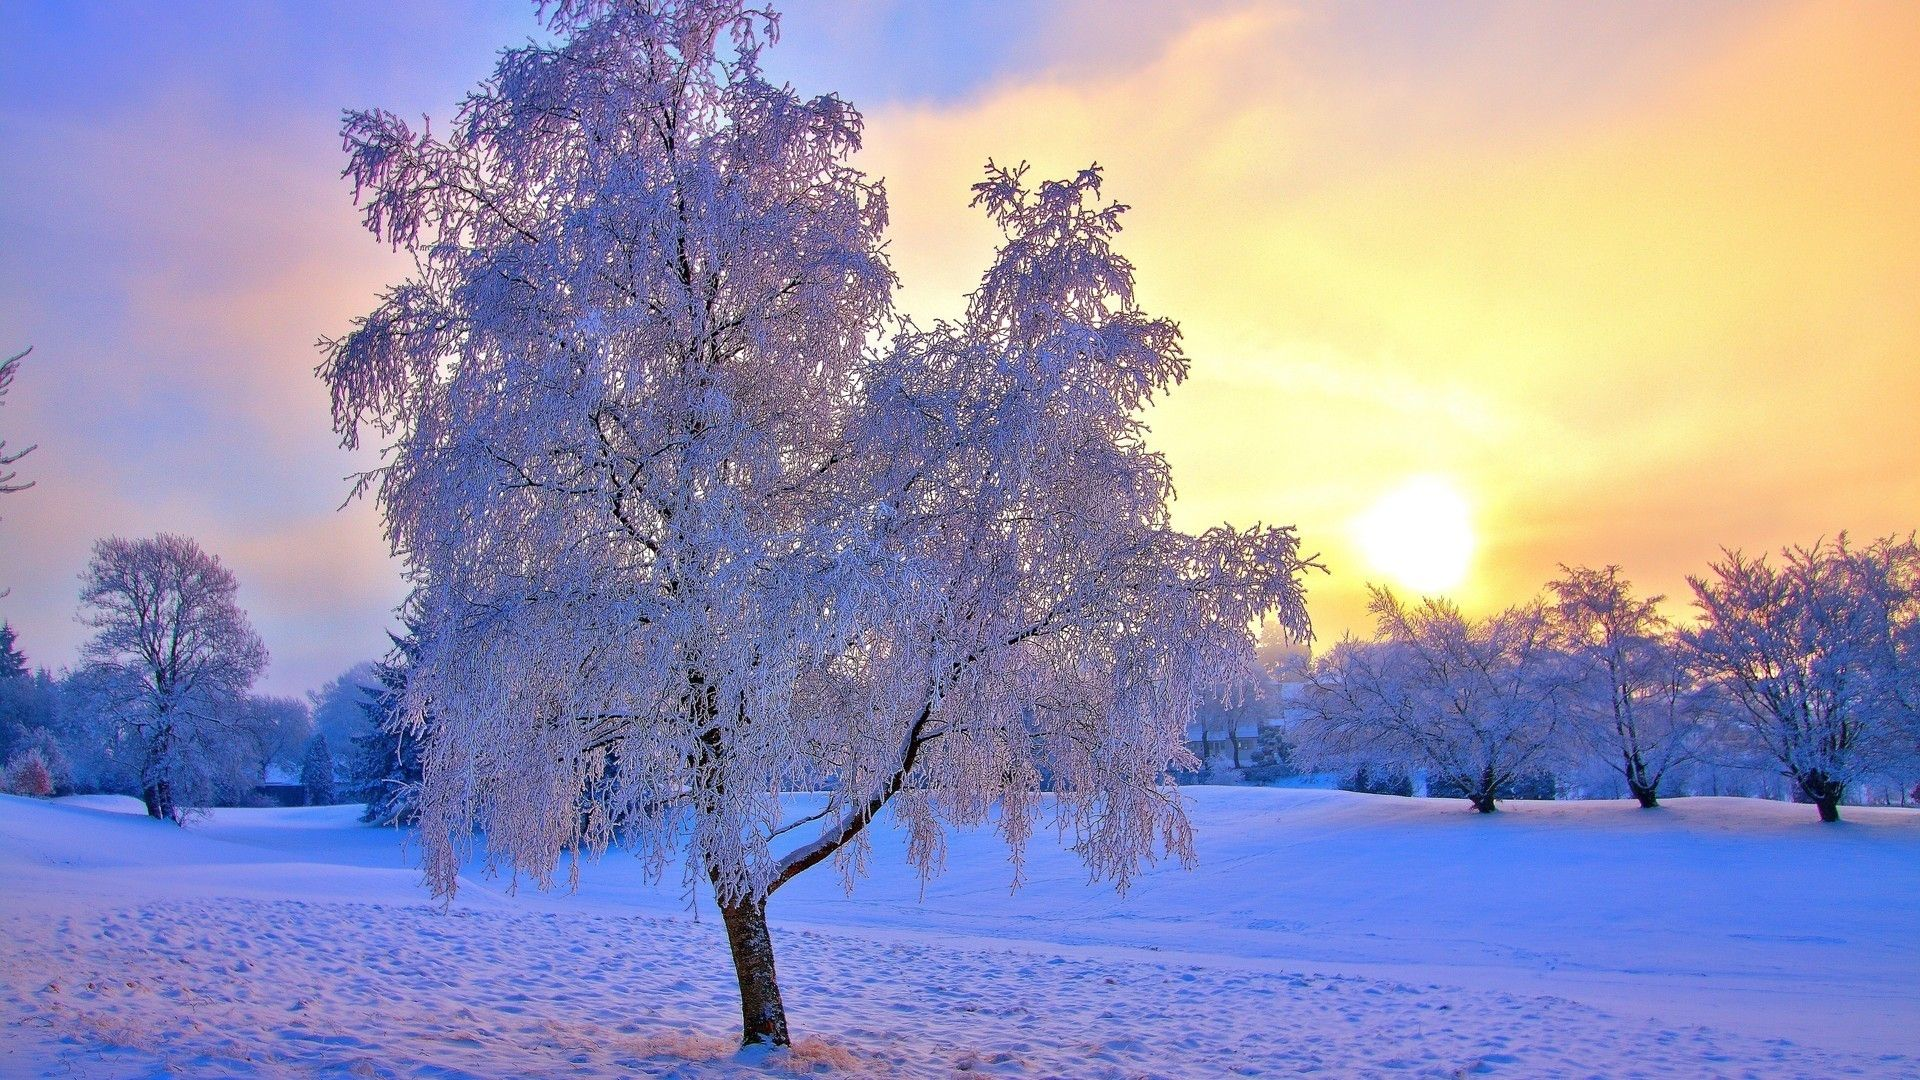 Winter Snow Scenes Wallpaper and Background